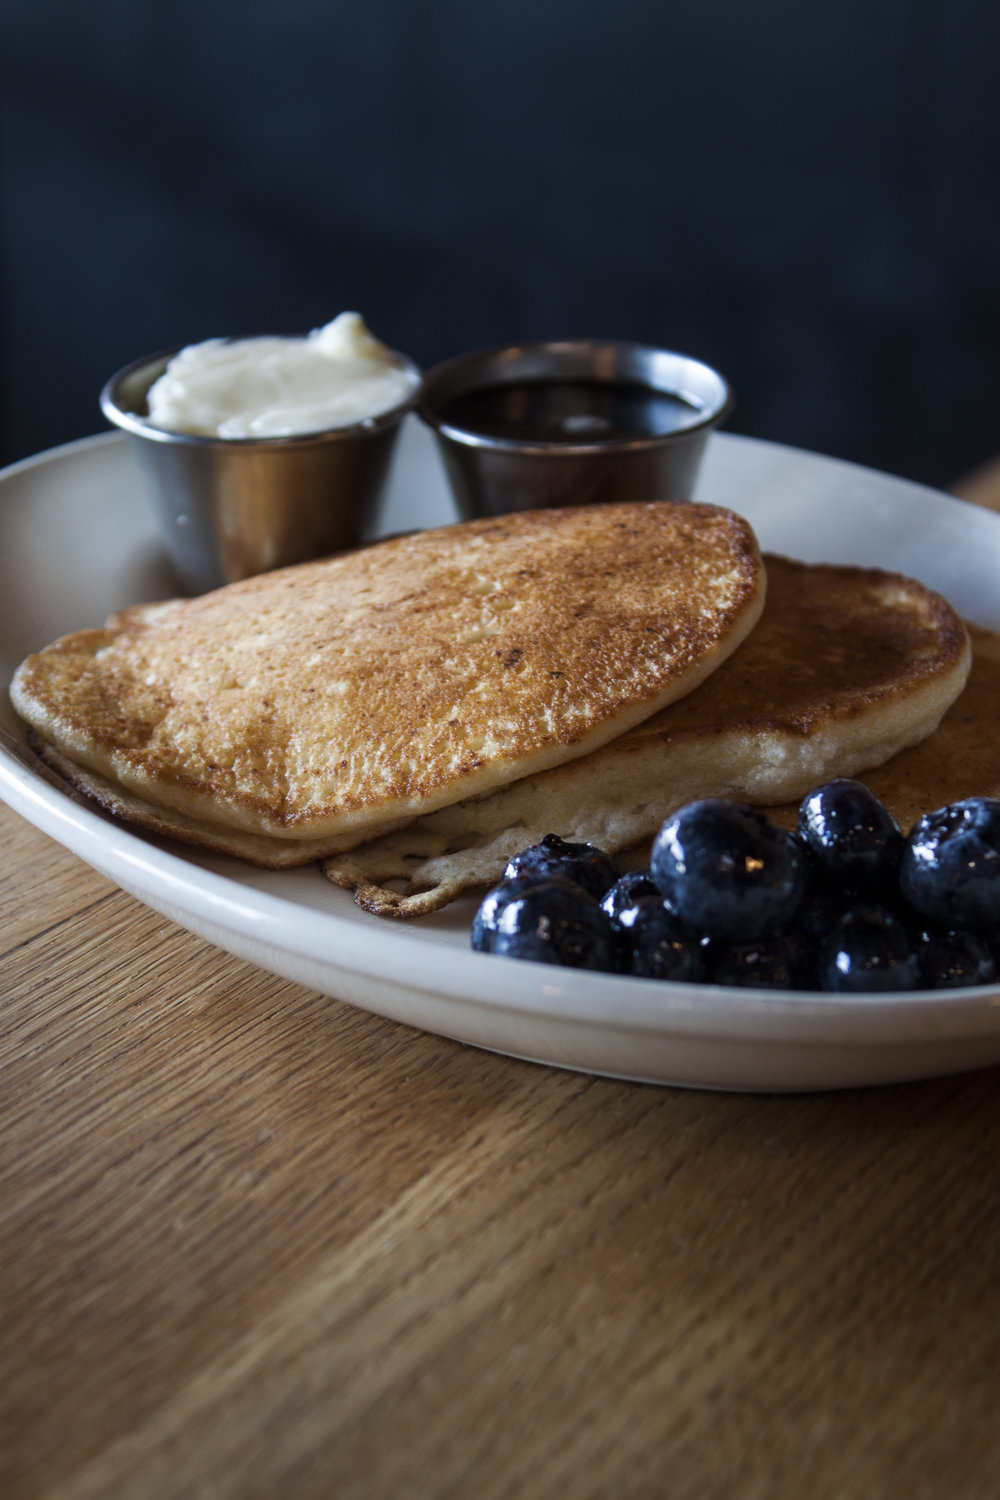 Best Pancakes in LA. Best Pancakes in Los Angeles. Odys Penelope Brunch. Odys + Penelope. Top 10 Food Blogs. Top blog sites.